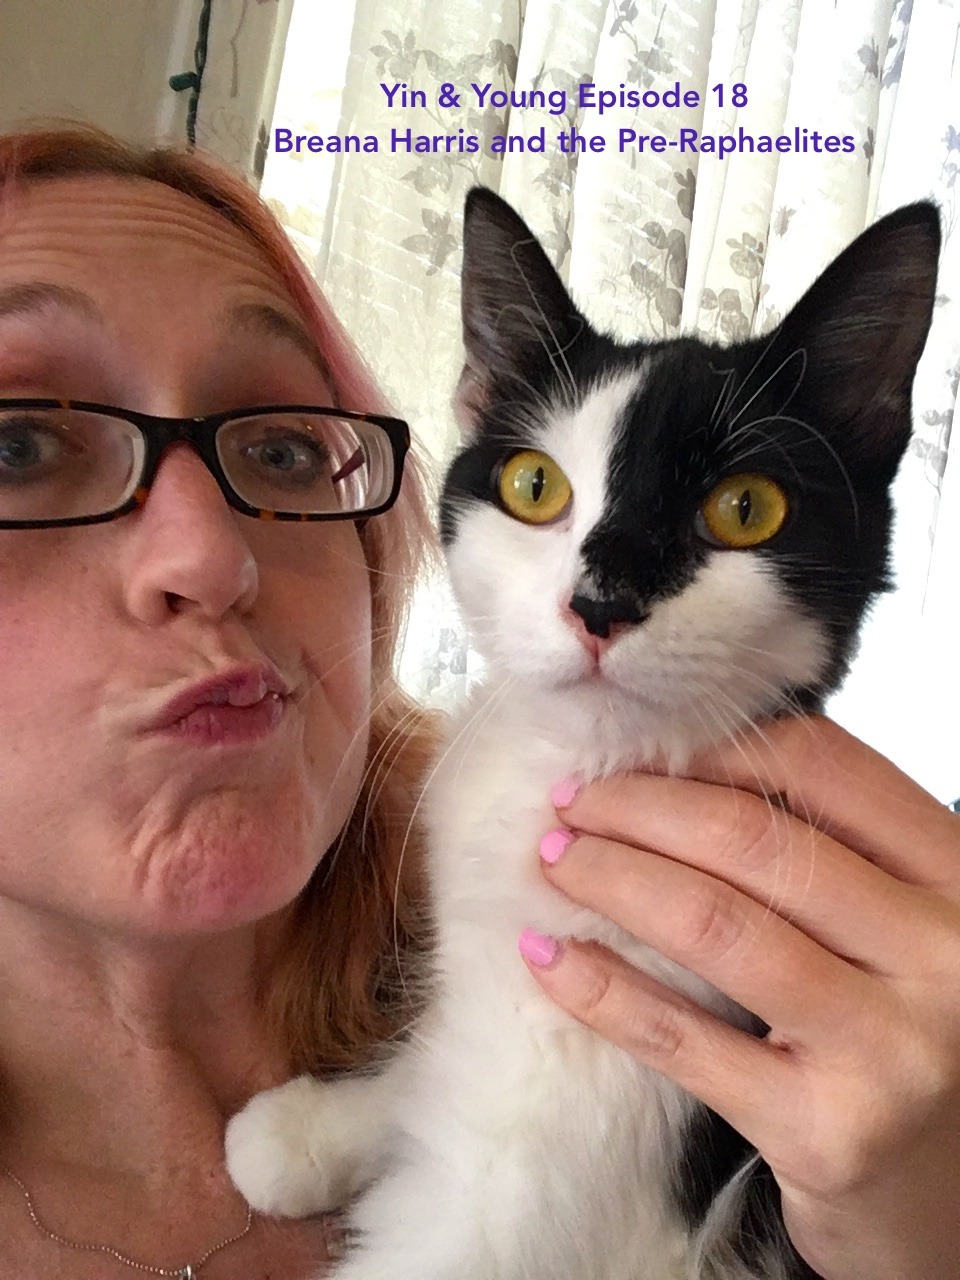 Breana + cat. Photo courtesy of Breana Harris.